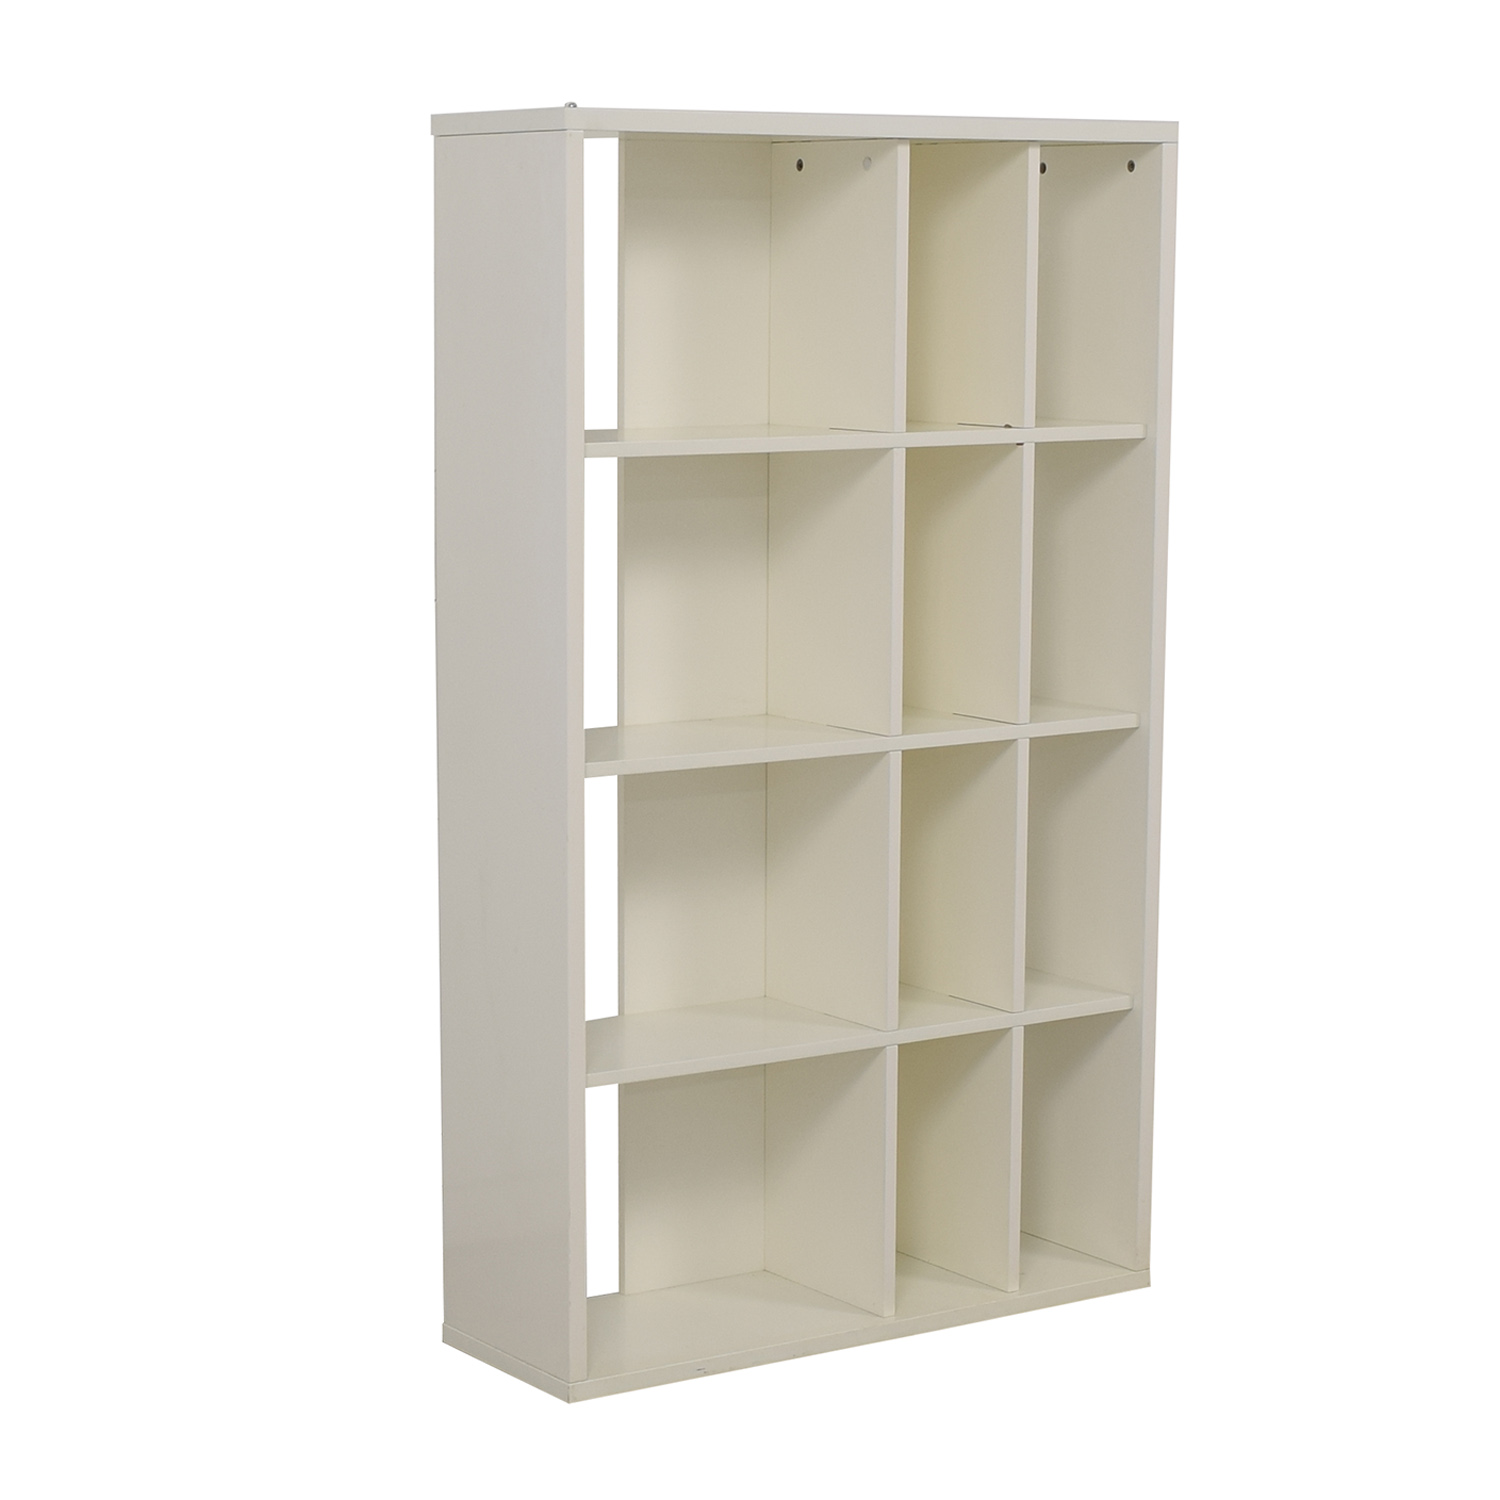 buy Crate & Barrel White Bookcase Crate & Barrel Bookcases & Shelving